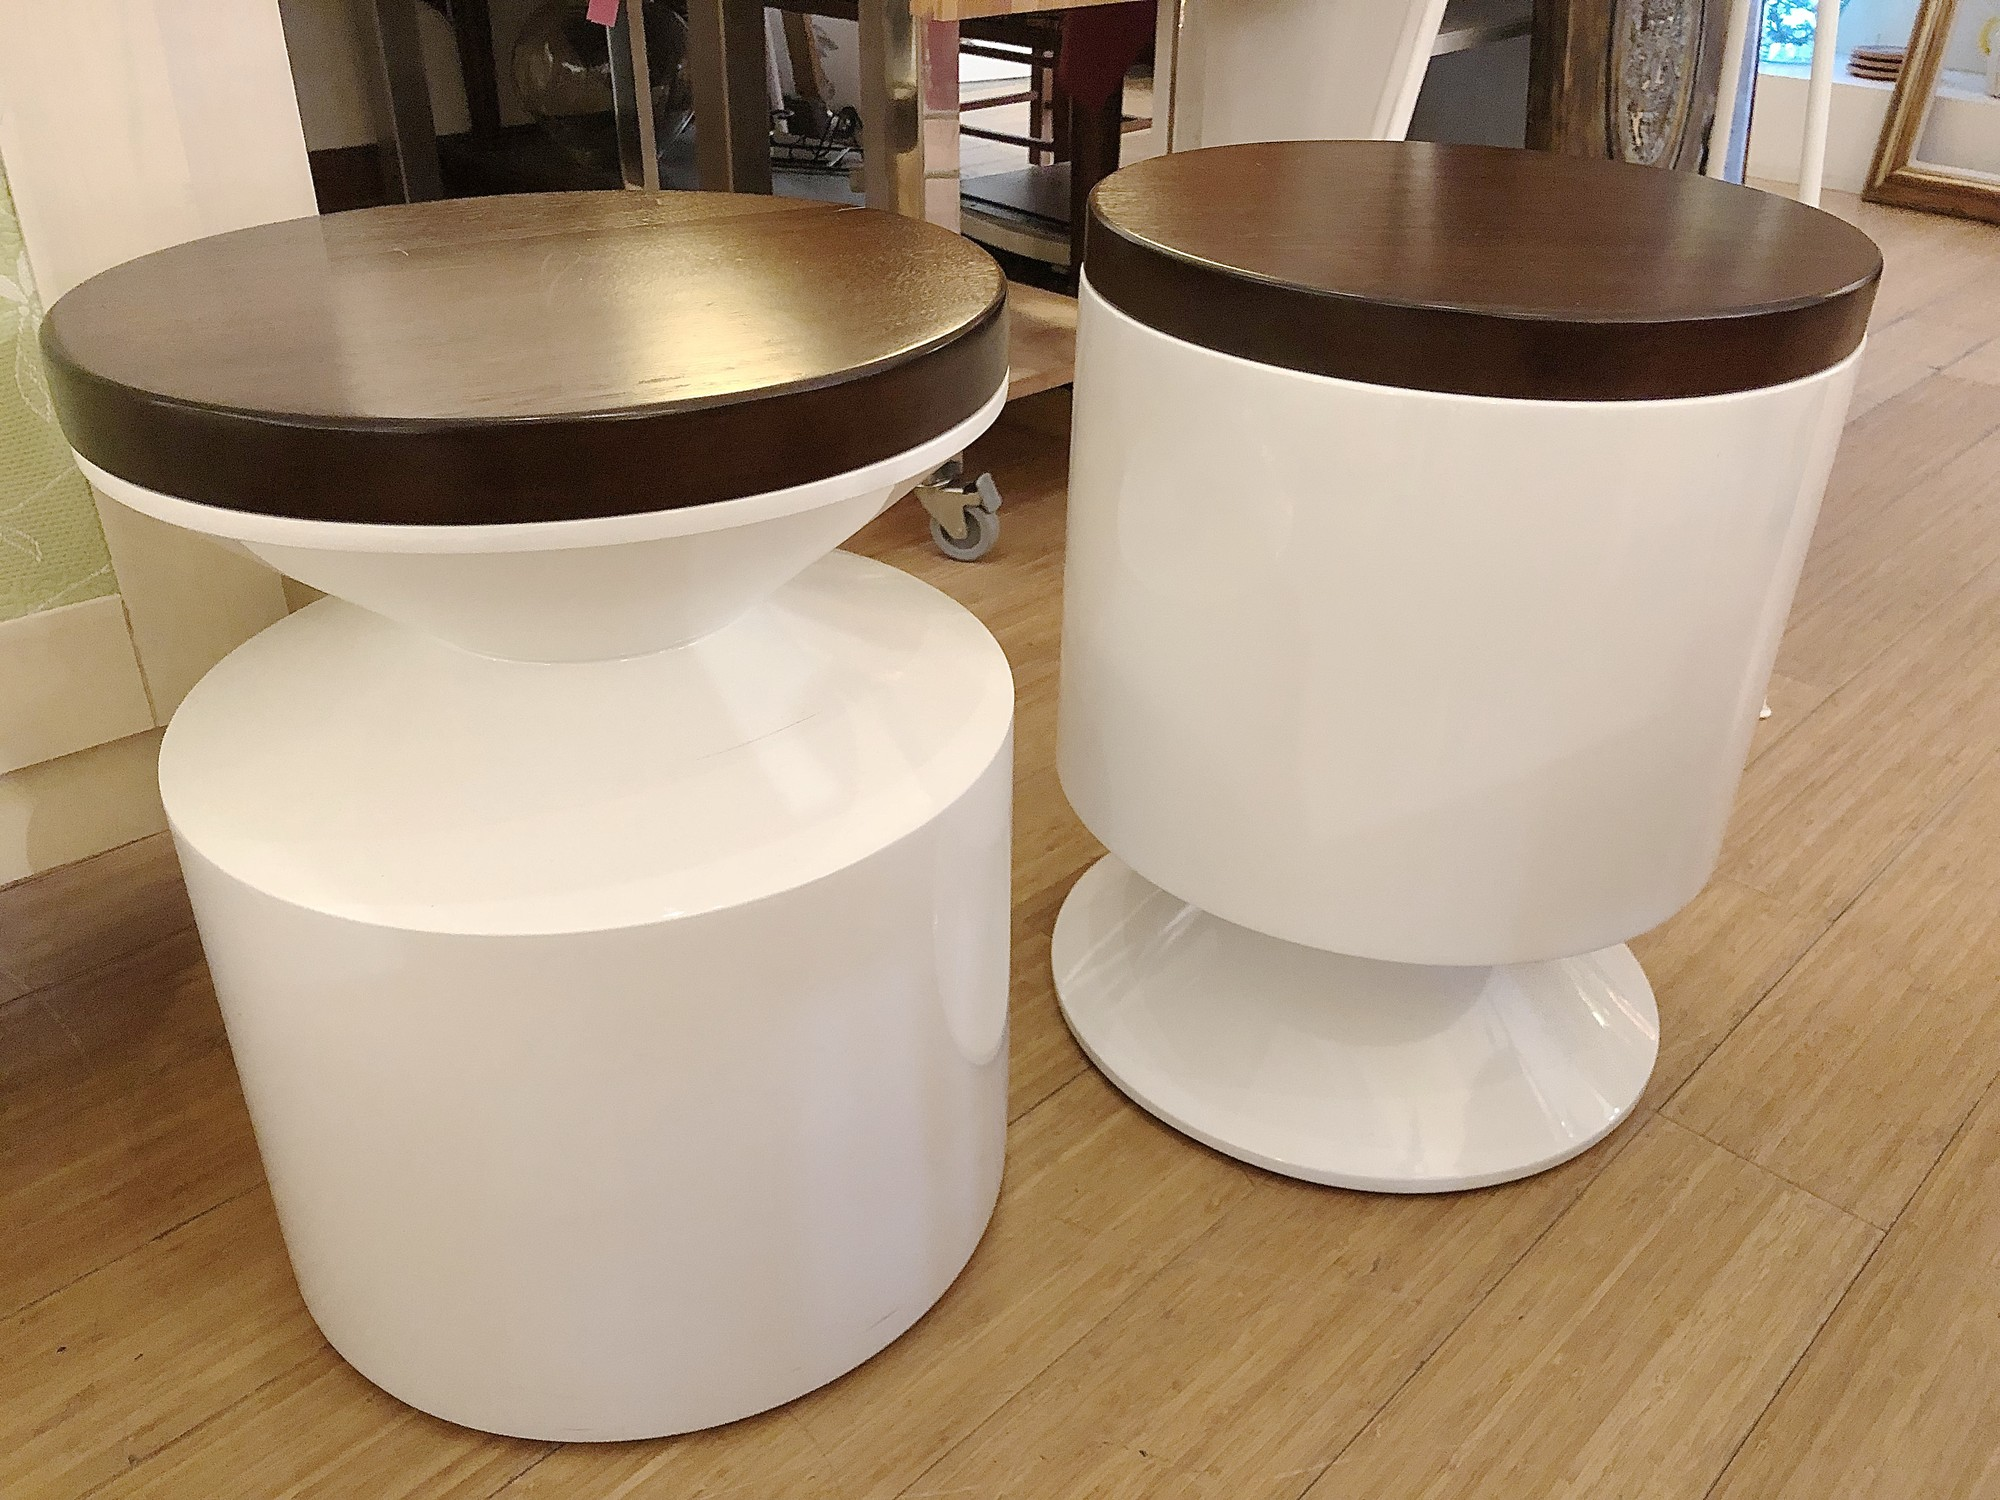 Table/Stool, White, Size: 16x21<br /> Second availabel item #76820